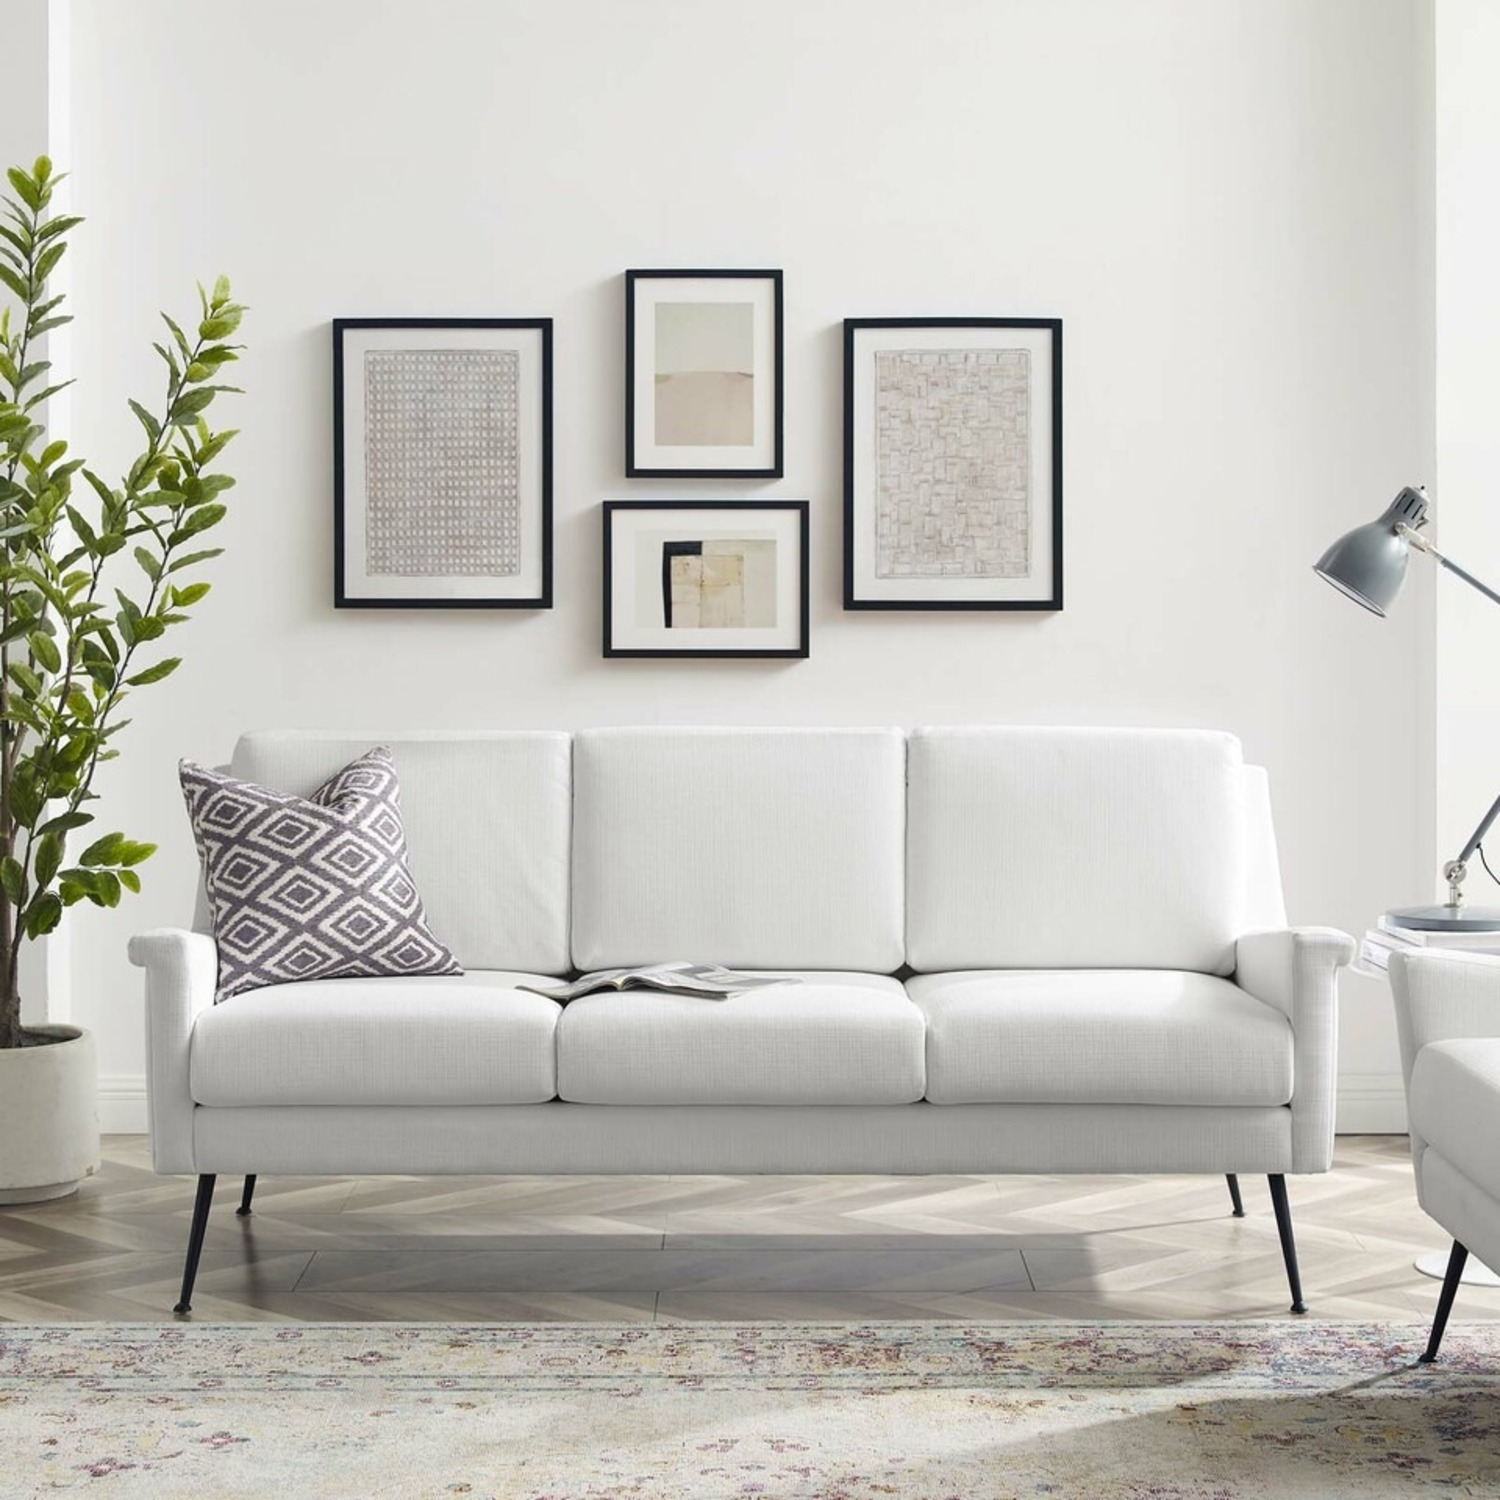 Retro Style Sofa In White Polyester Fabric - image-6